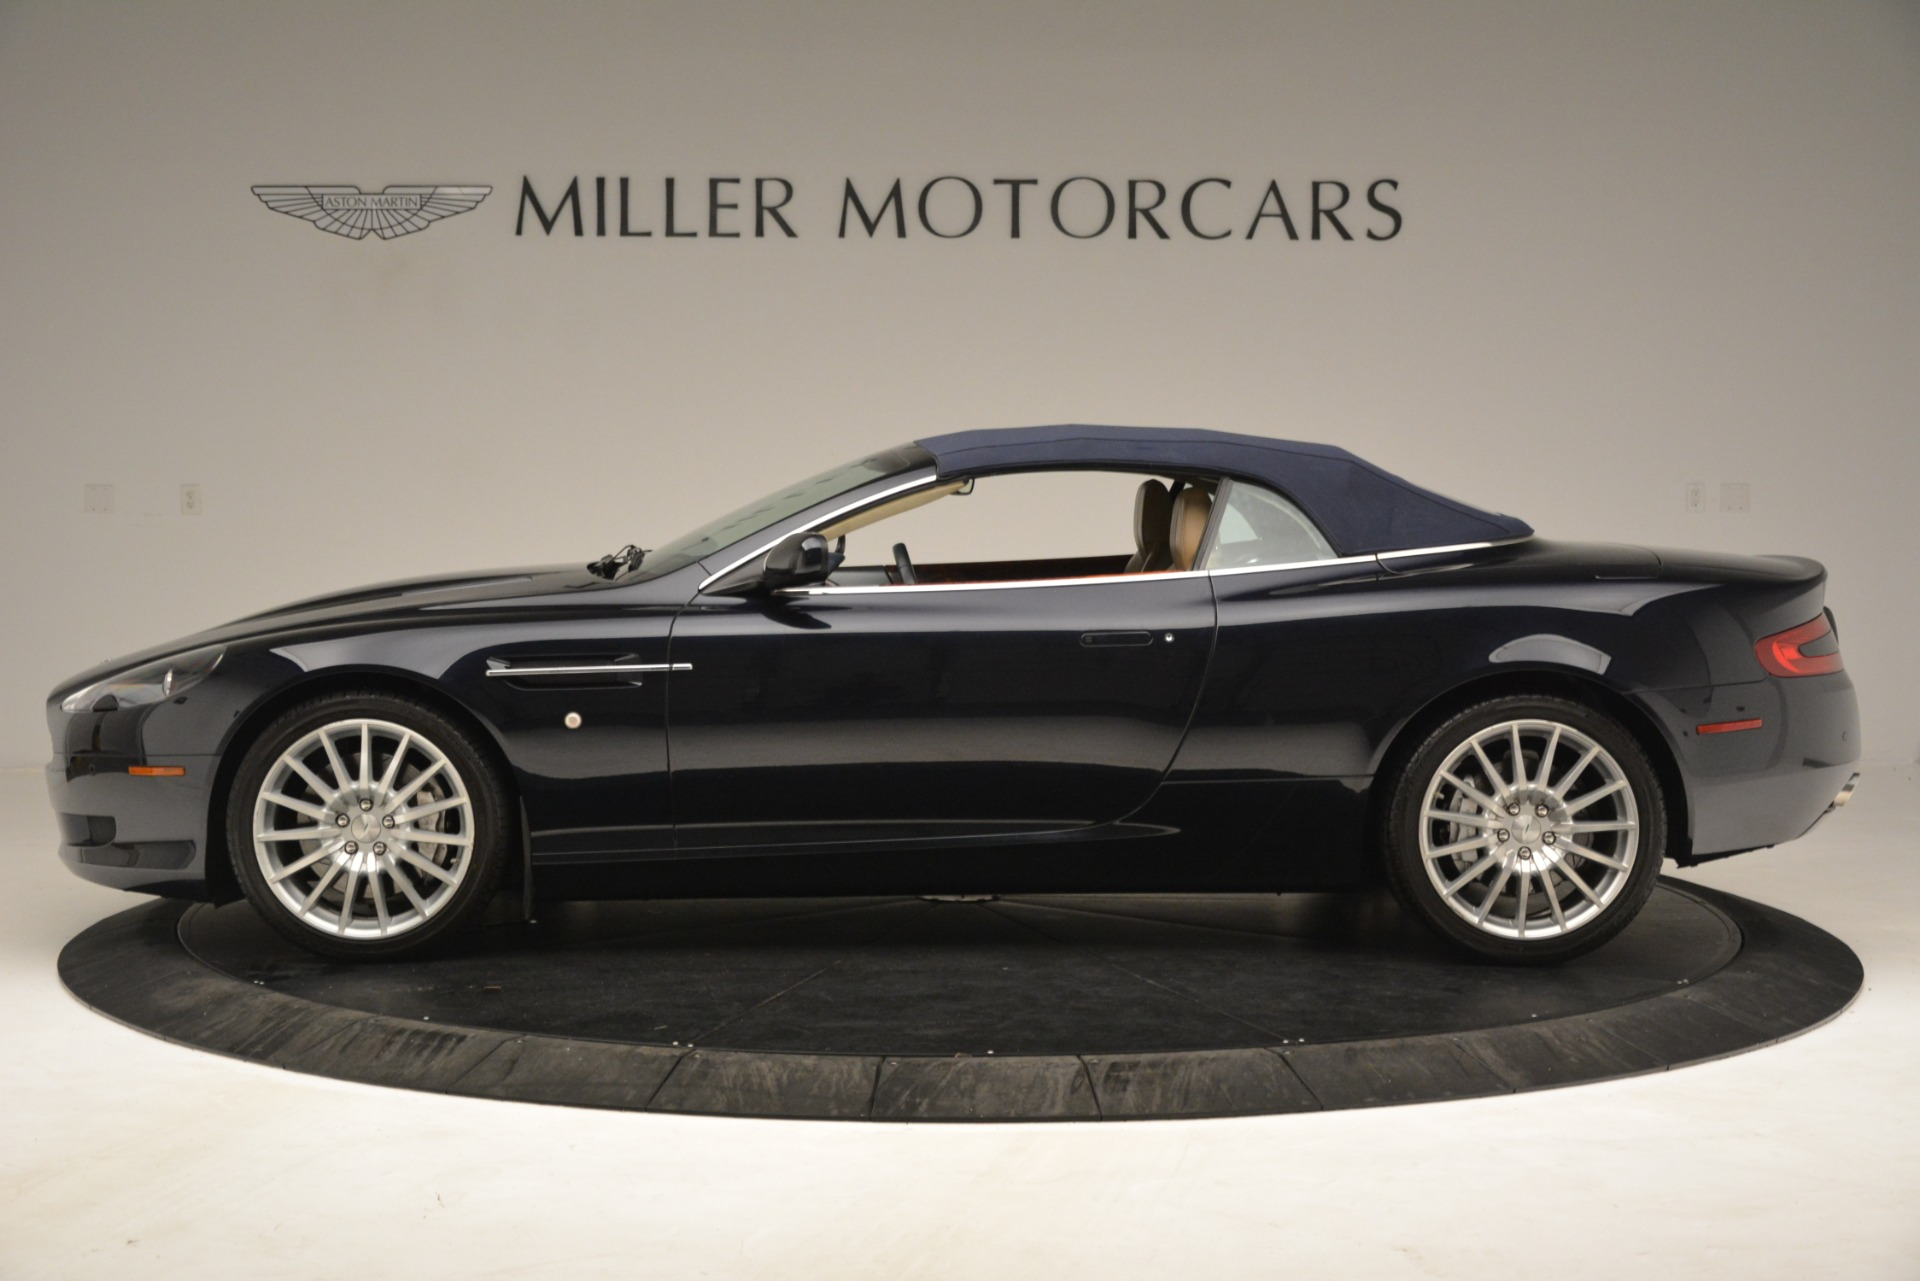 Used 2007 Aston Martin DB9 Convertible For Sale In Greenwich, CT 3291_p24